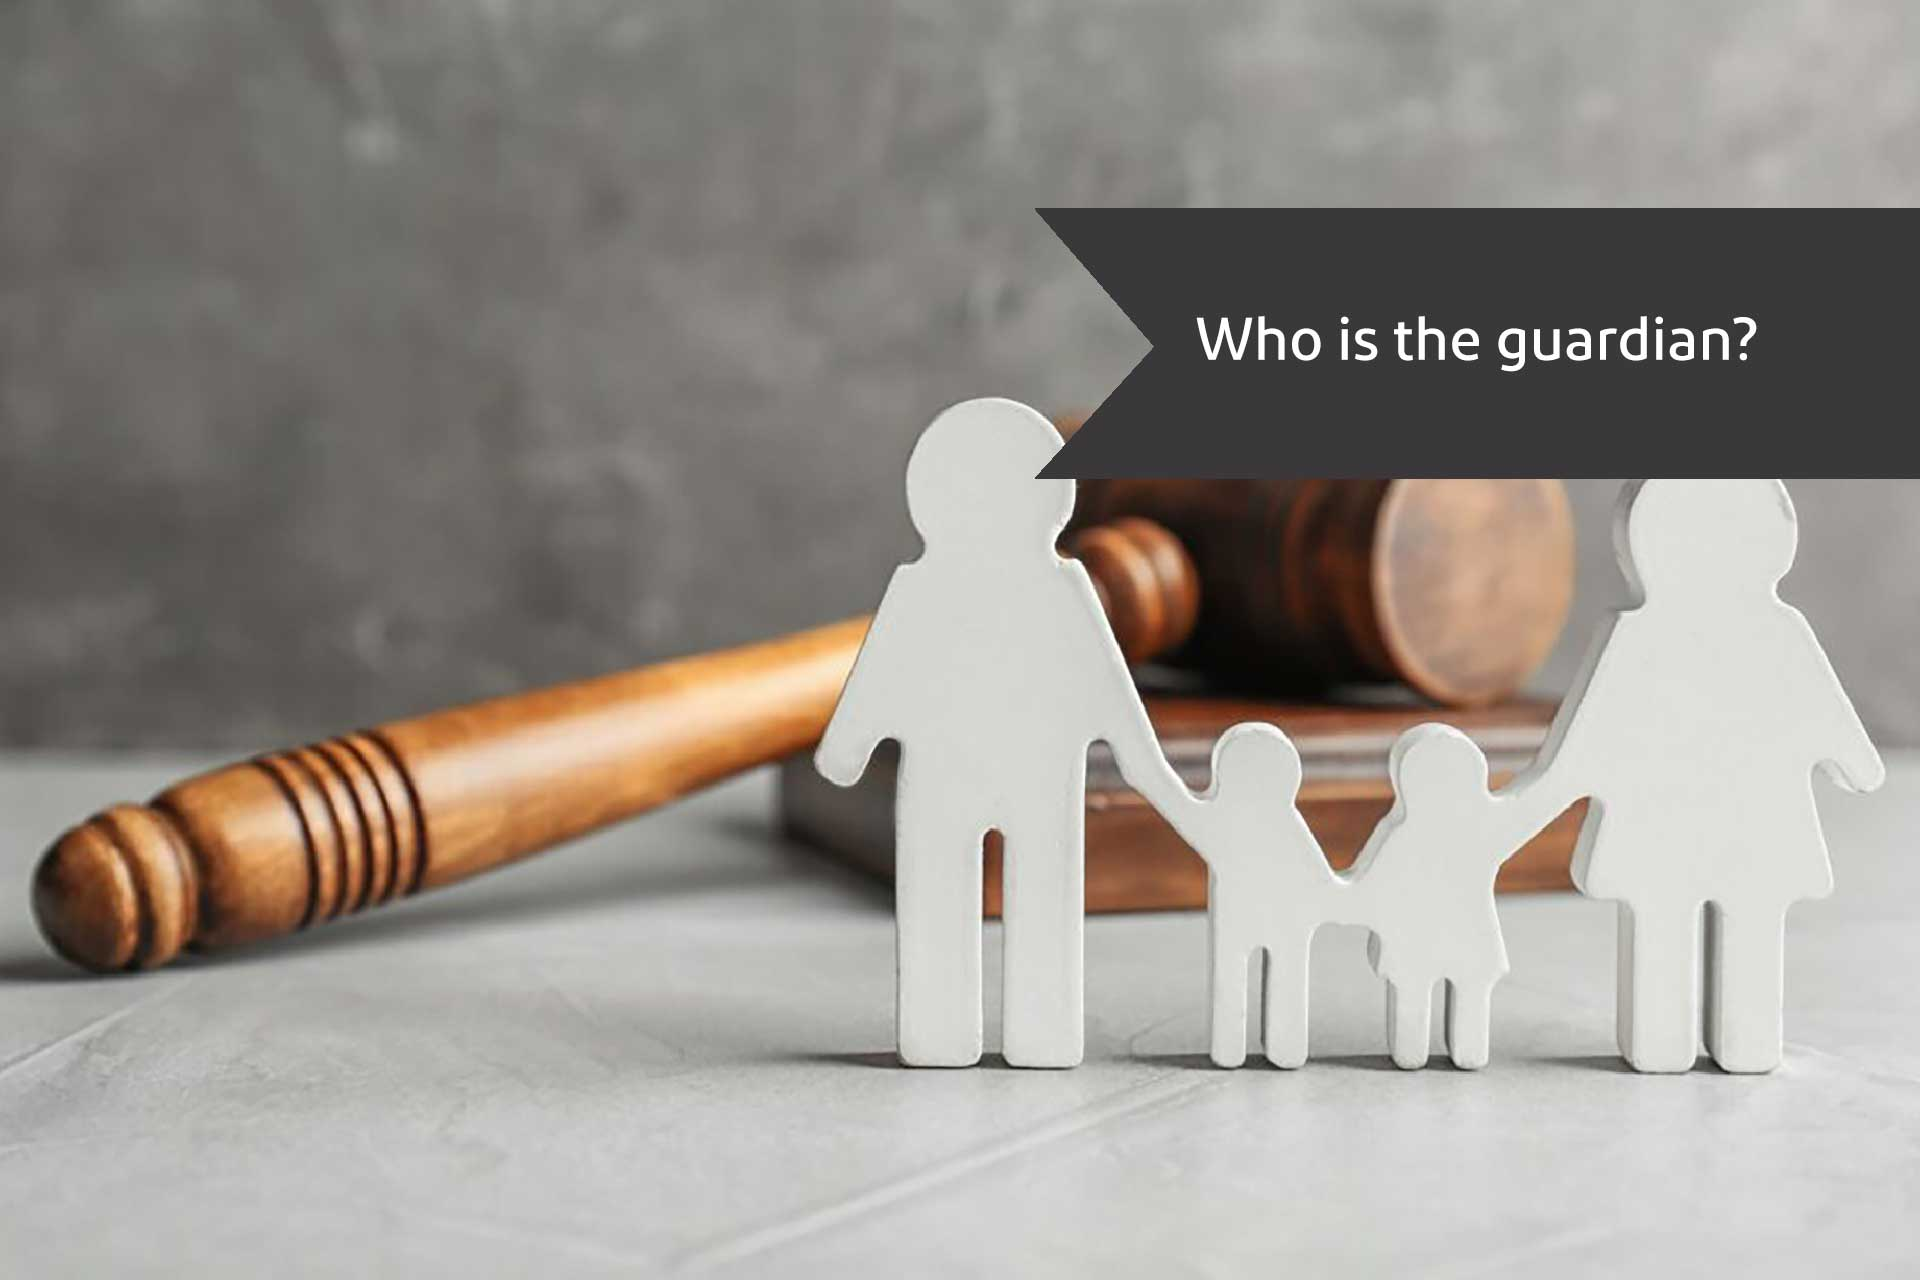 Who is the guardian?